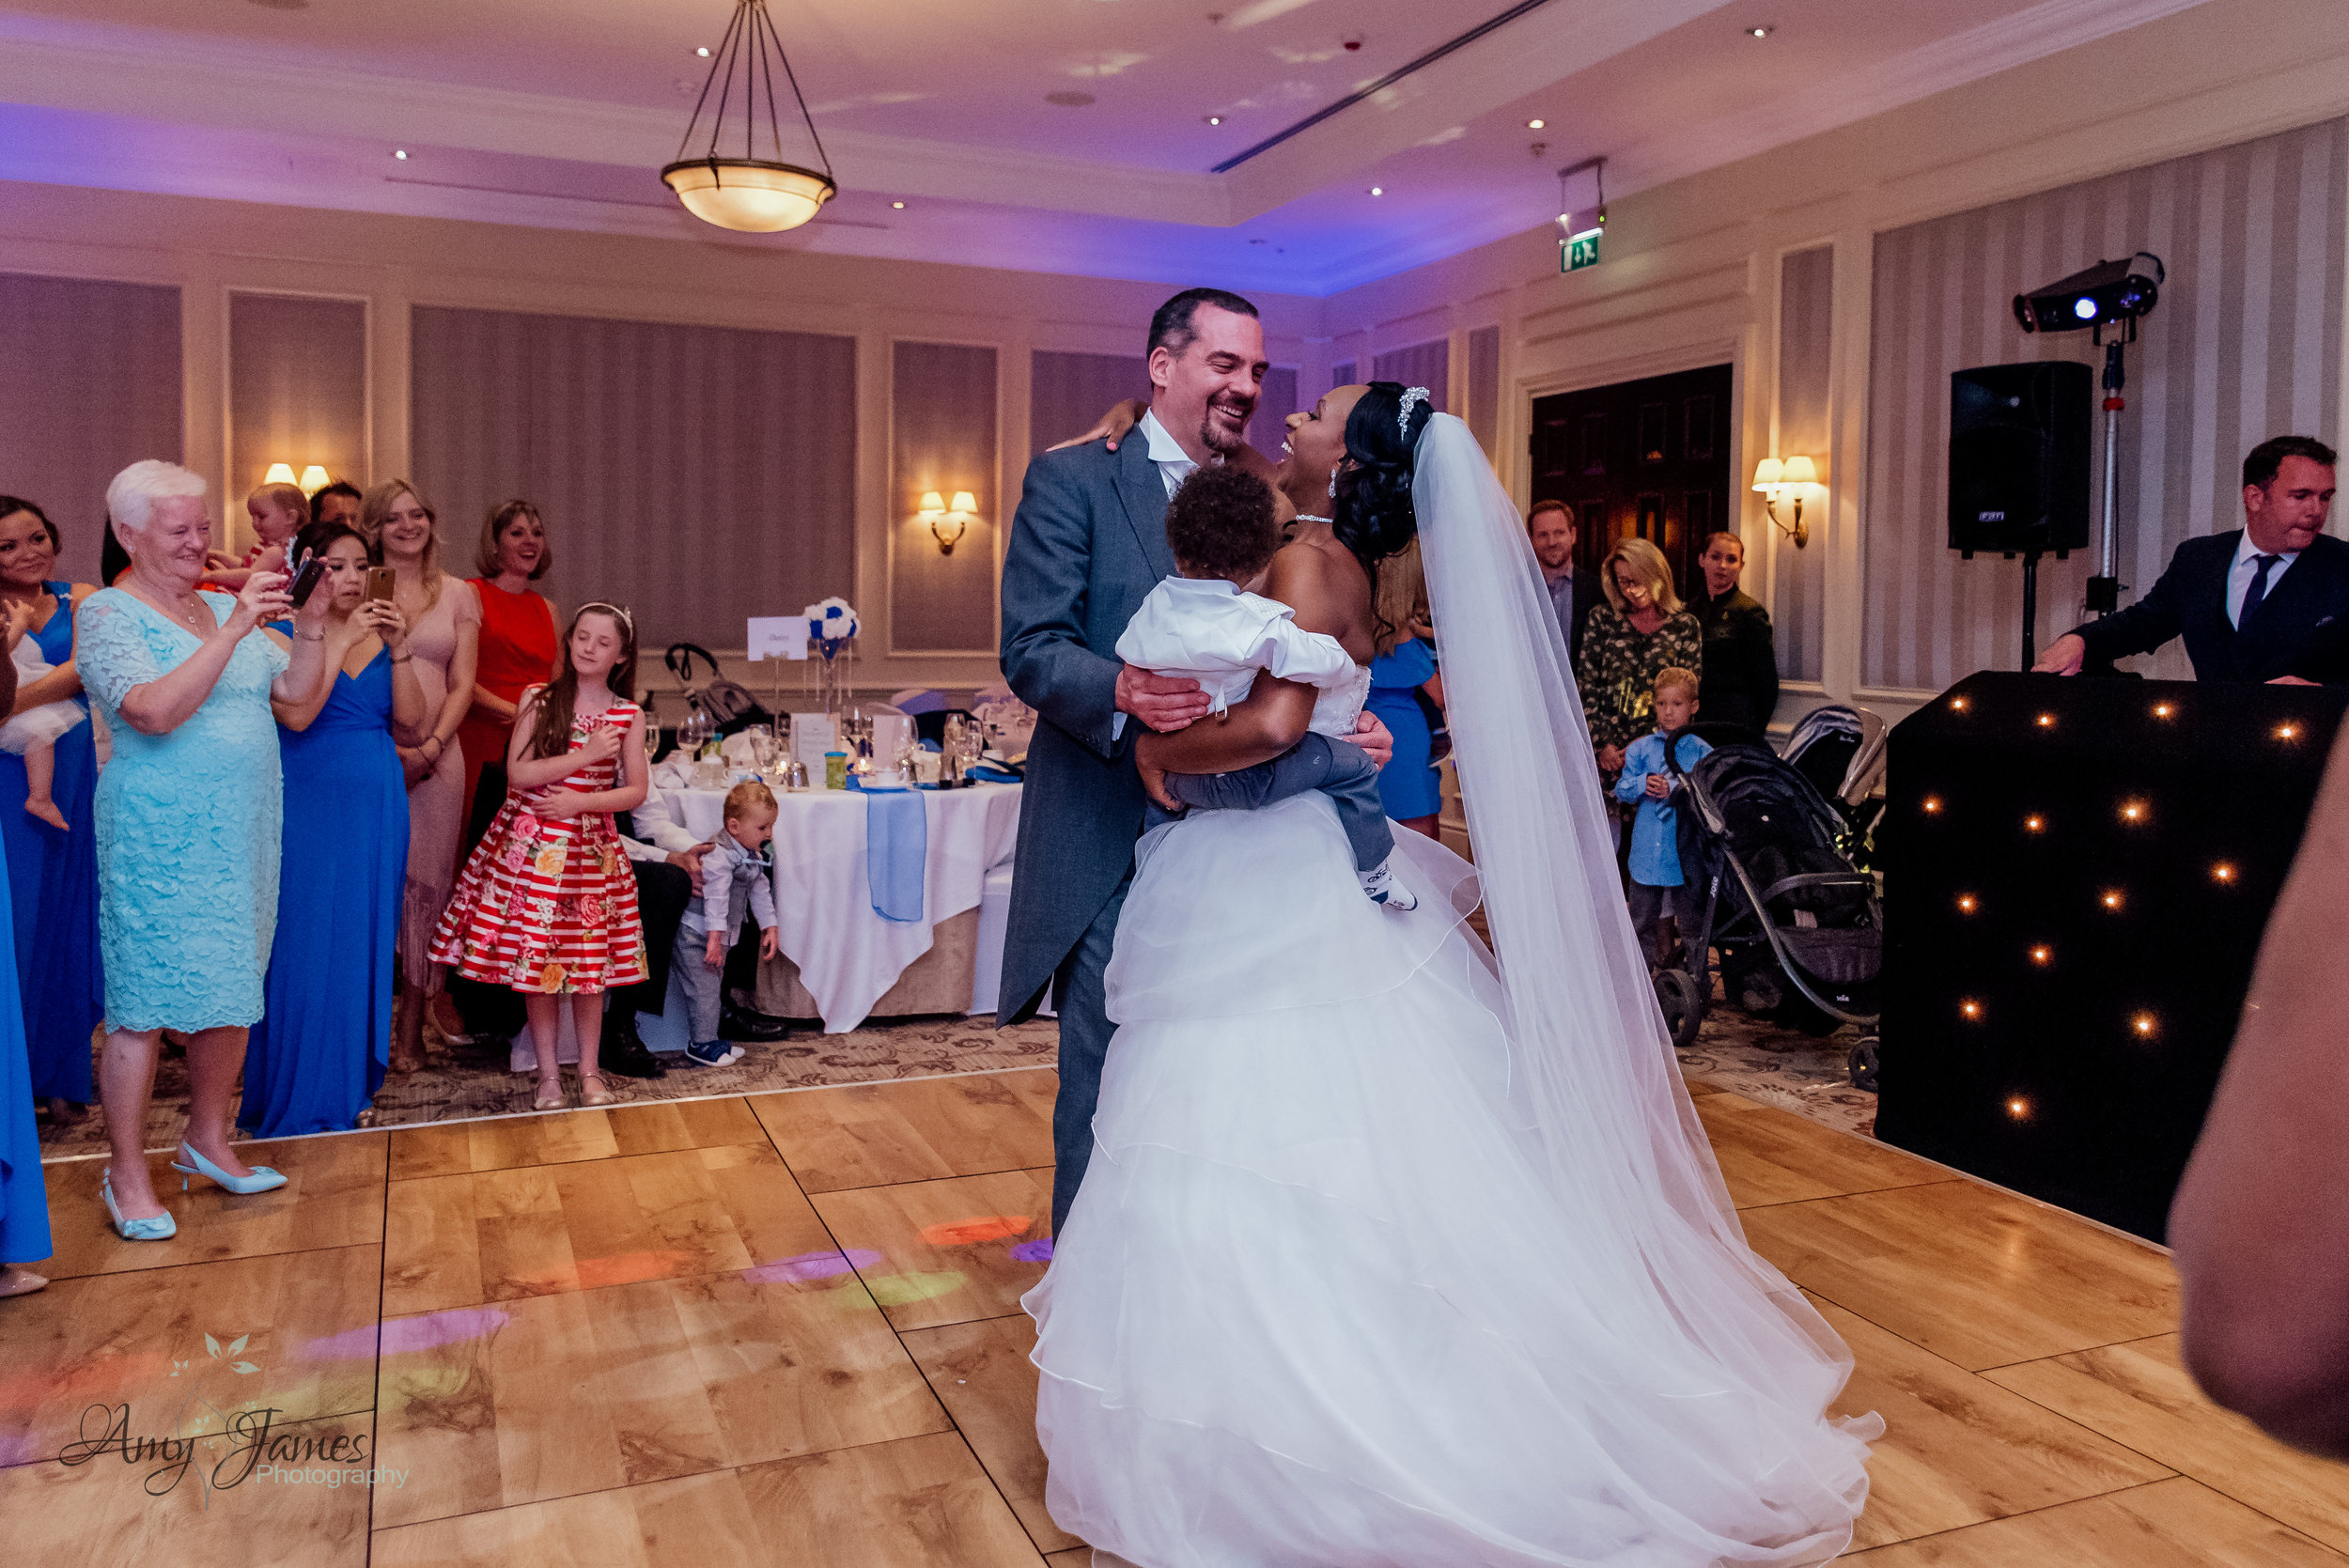 The first dance at Four Seasons Hotel Hampshire by Amy James photography documentary wedding photographer for Hampshire and Surrey